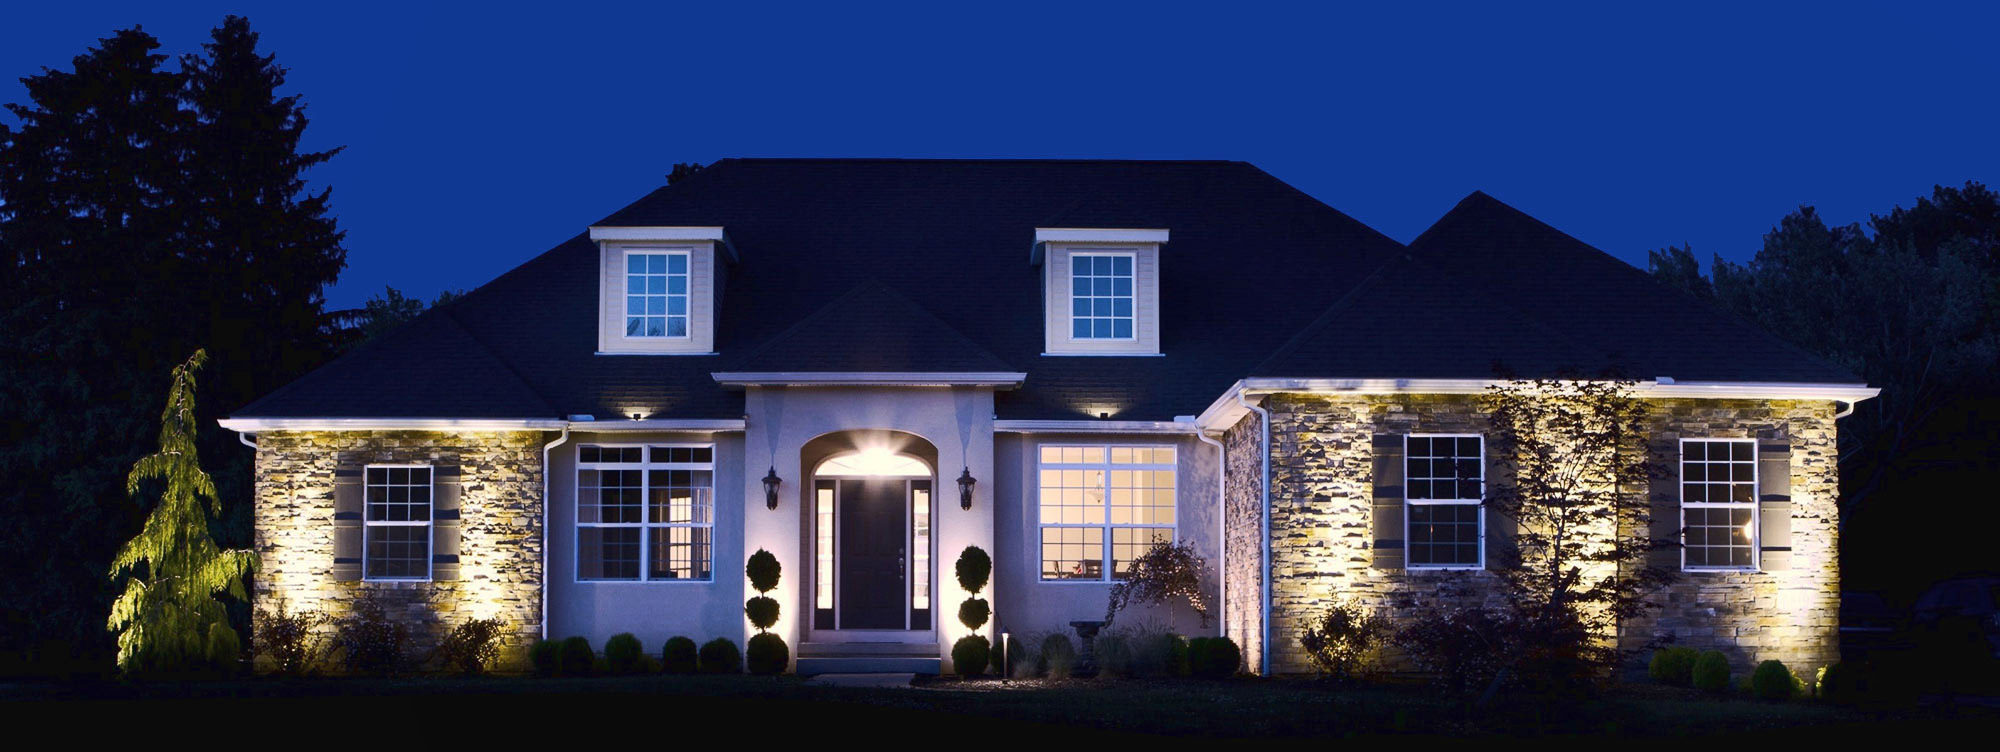 starry night lighting landscape lighting company in sandusky ohio